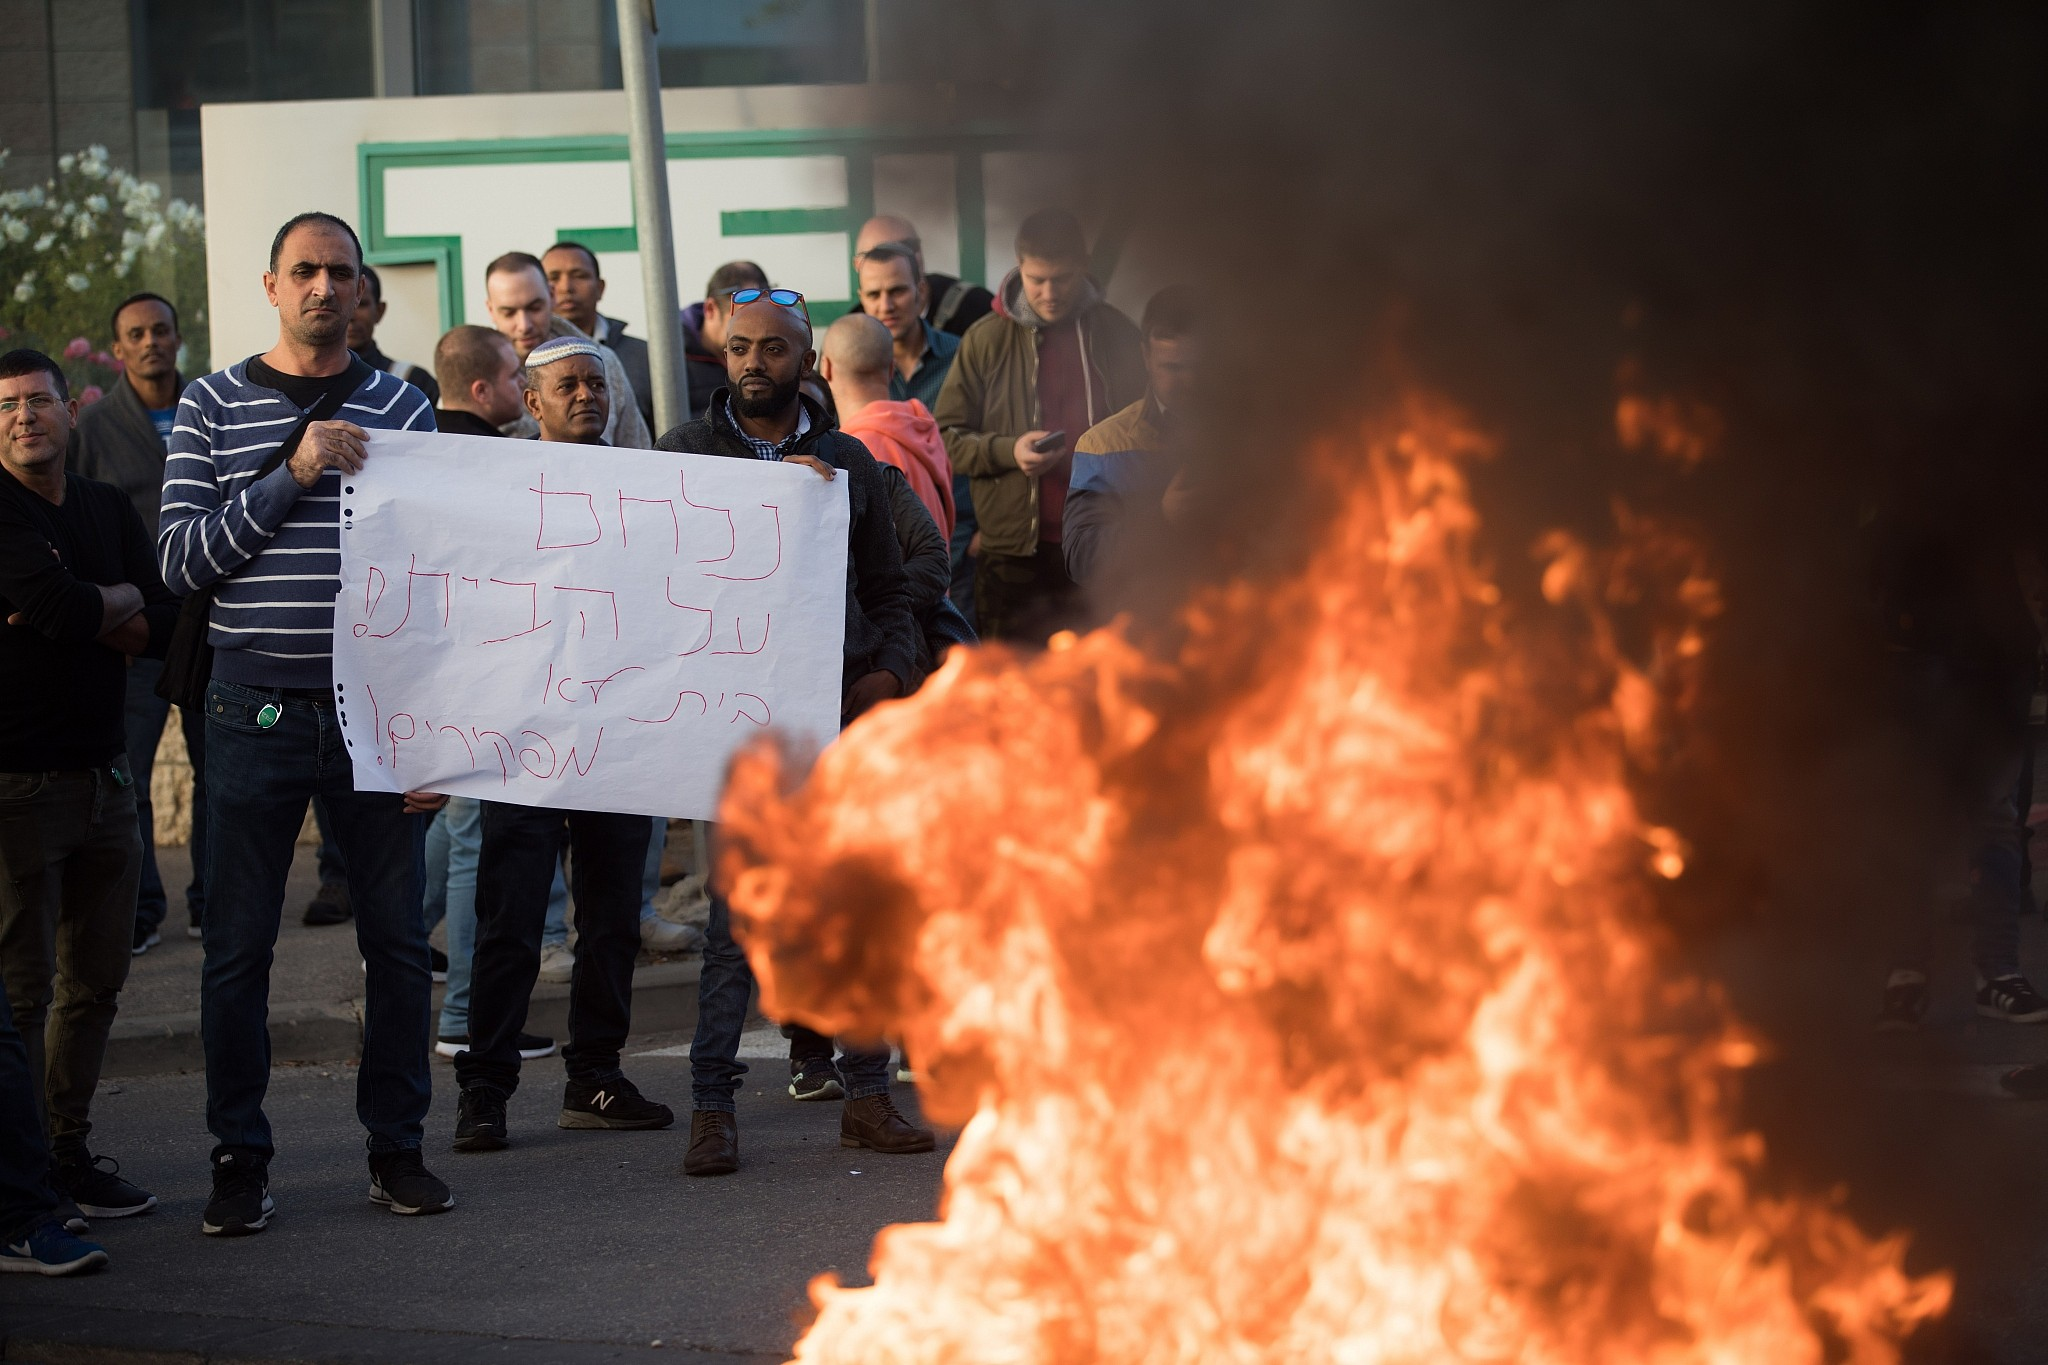 Israeli workers strike nationwide to protest Teva layoffs